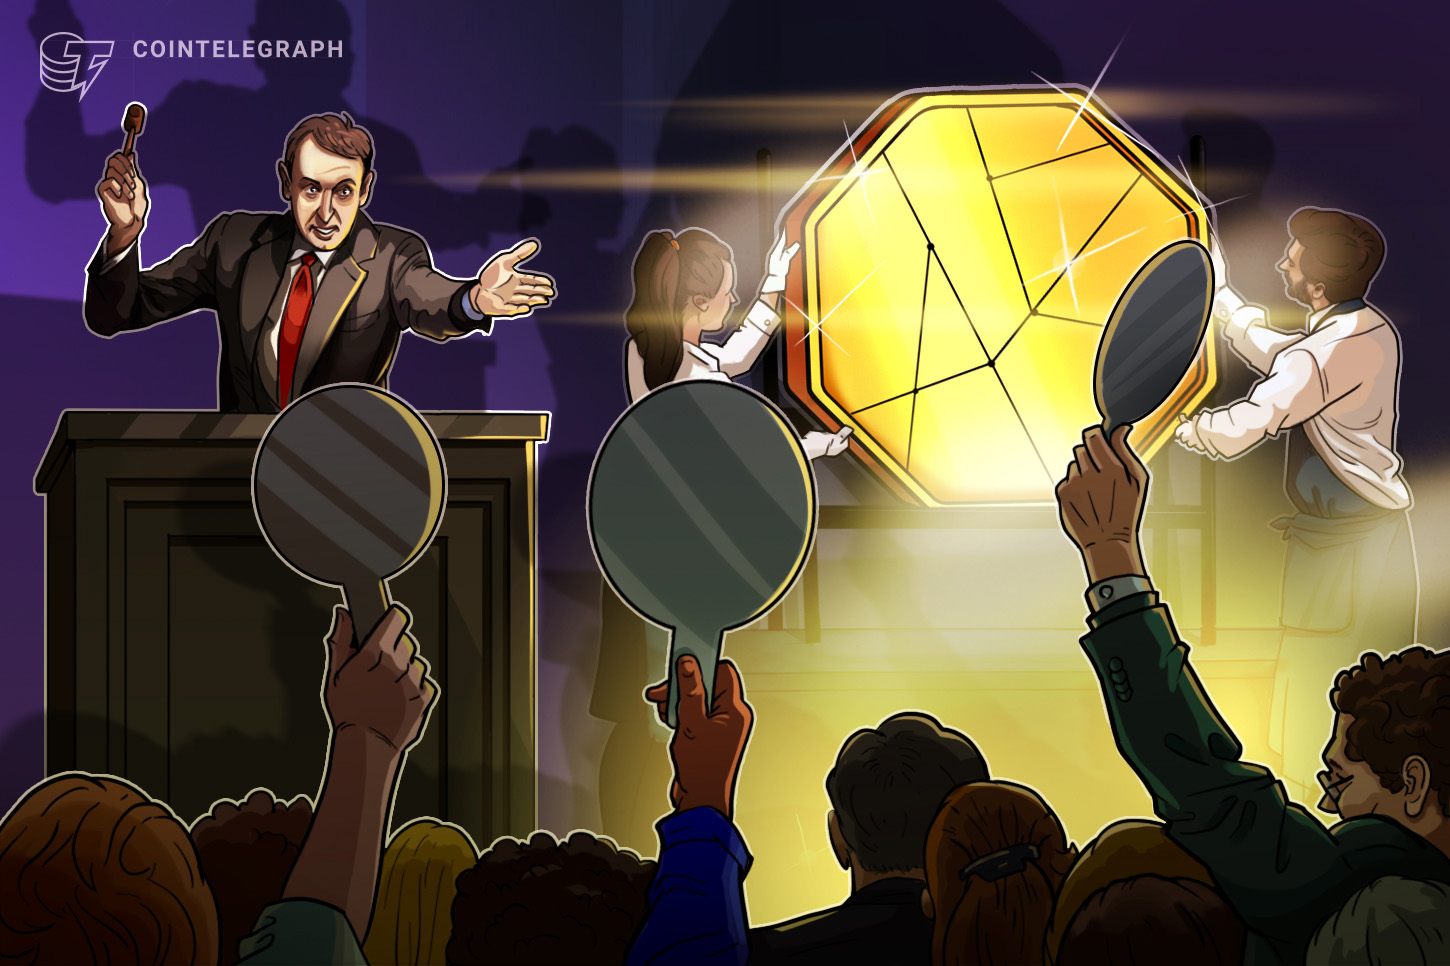 Sotheby's auction sets new world record for $11.8M CryptoPunk sale